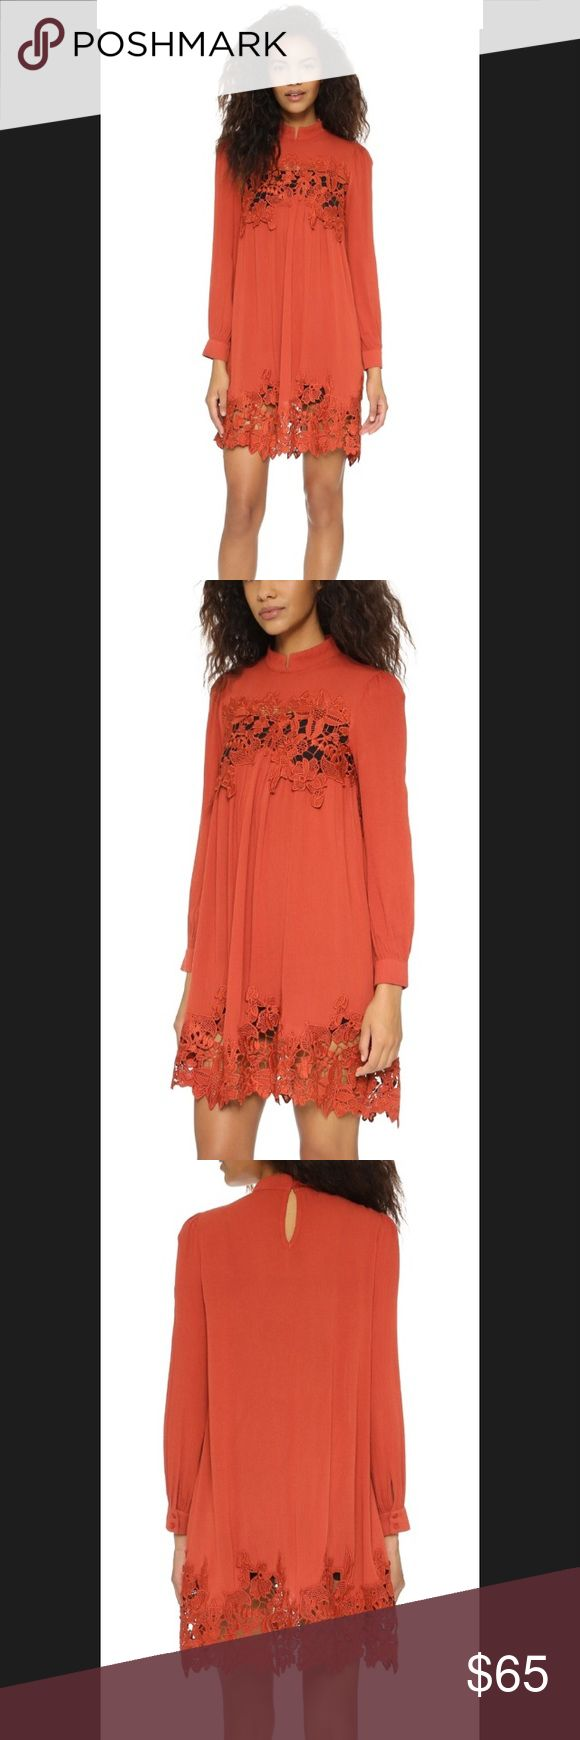 re:named orange mini dress with high neckline See pics for description. Brand new with tag. Purchased online and couldn't return it. The lace on this is lovely!! Anthropologie Dresses Mini